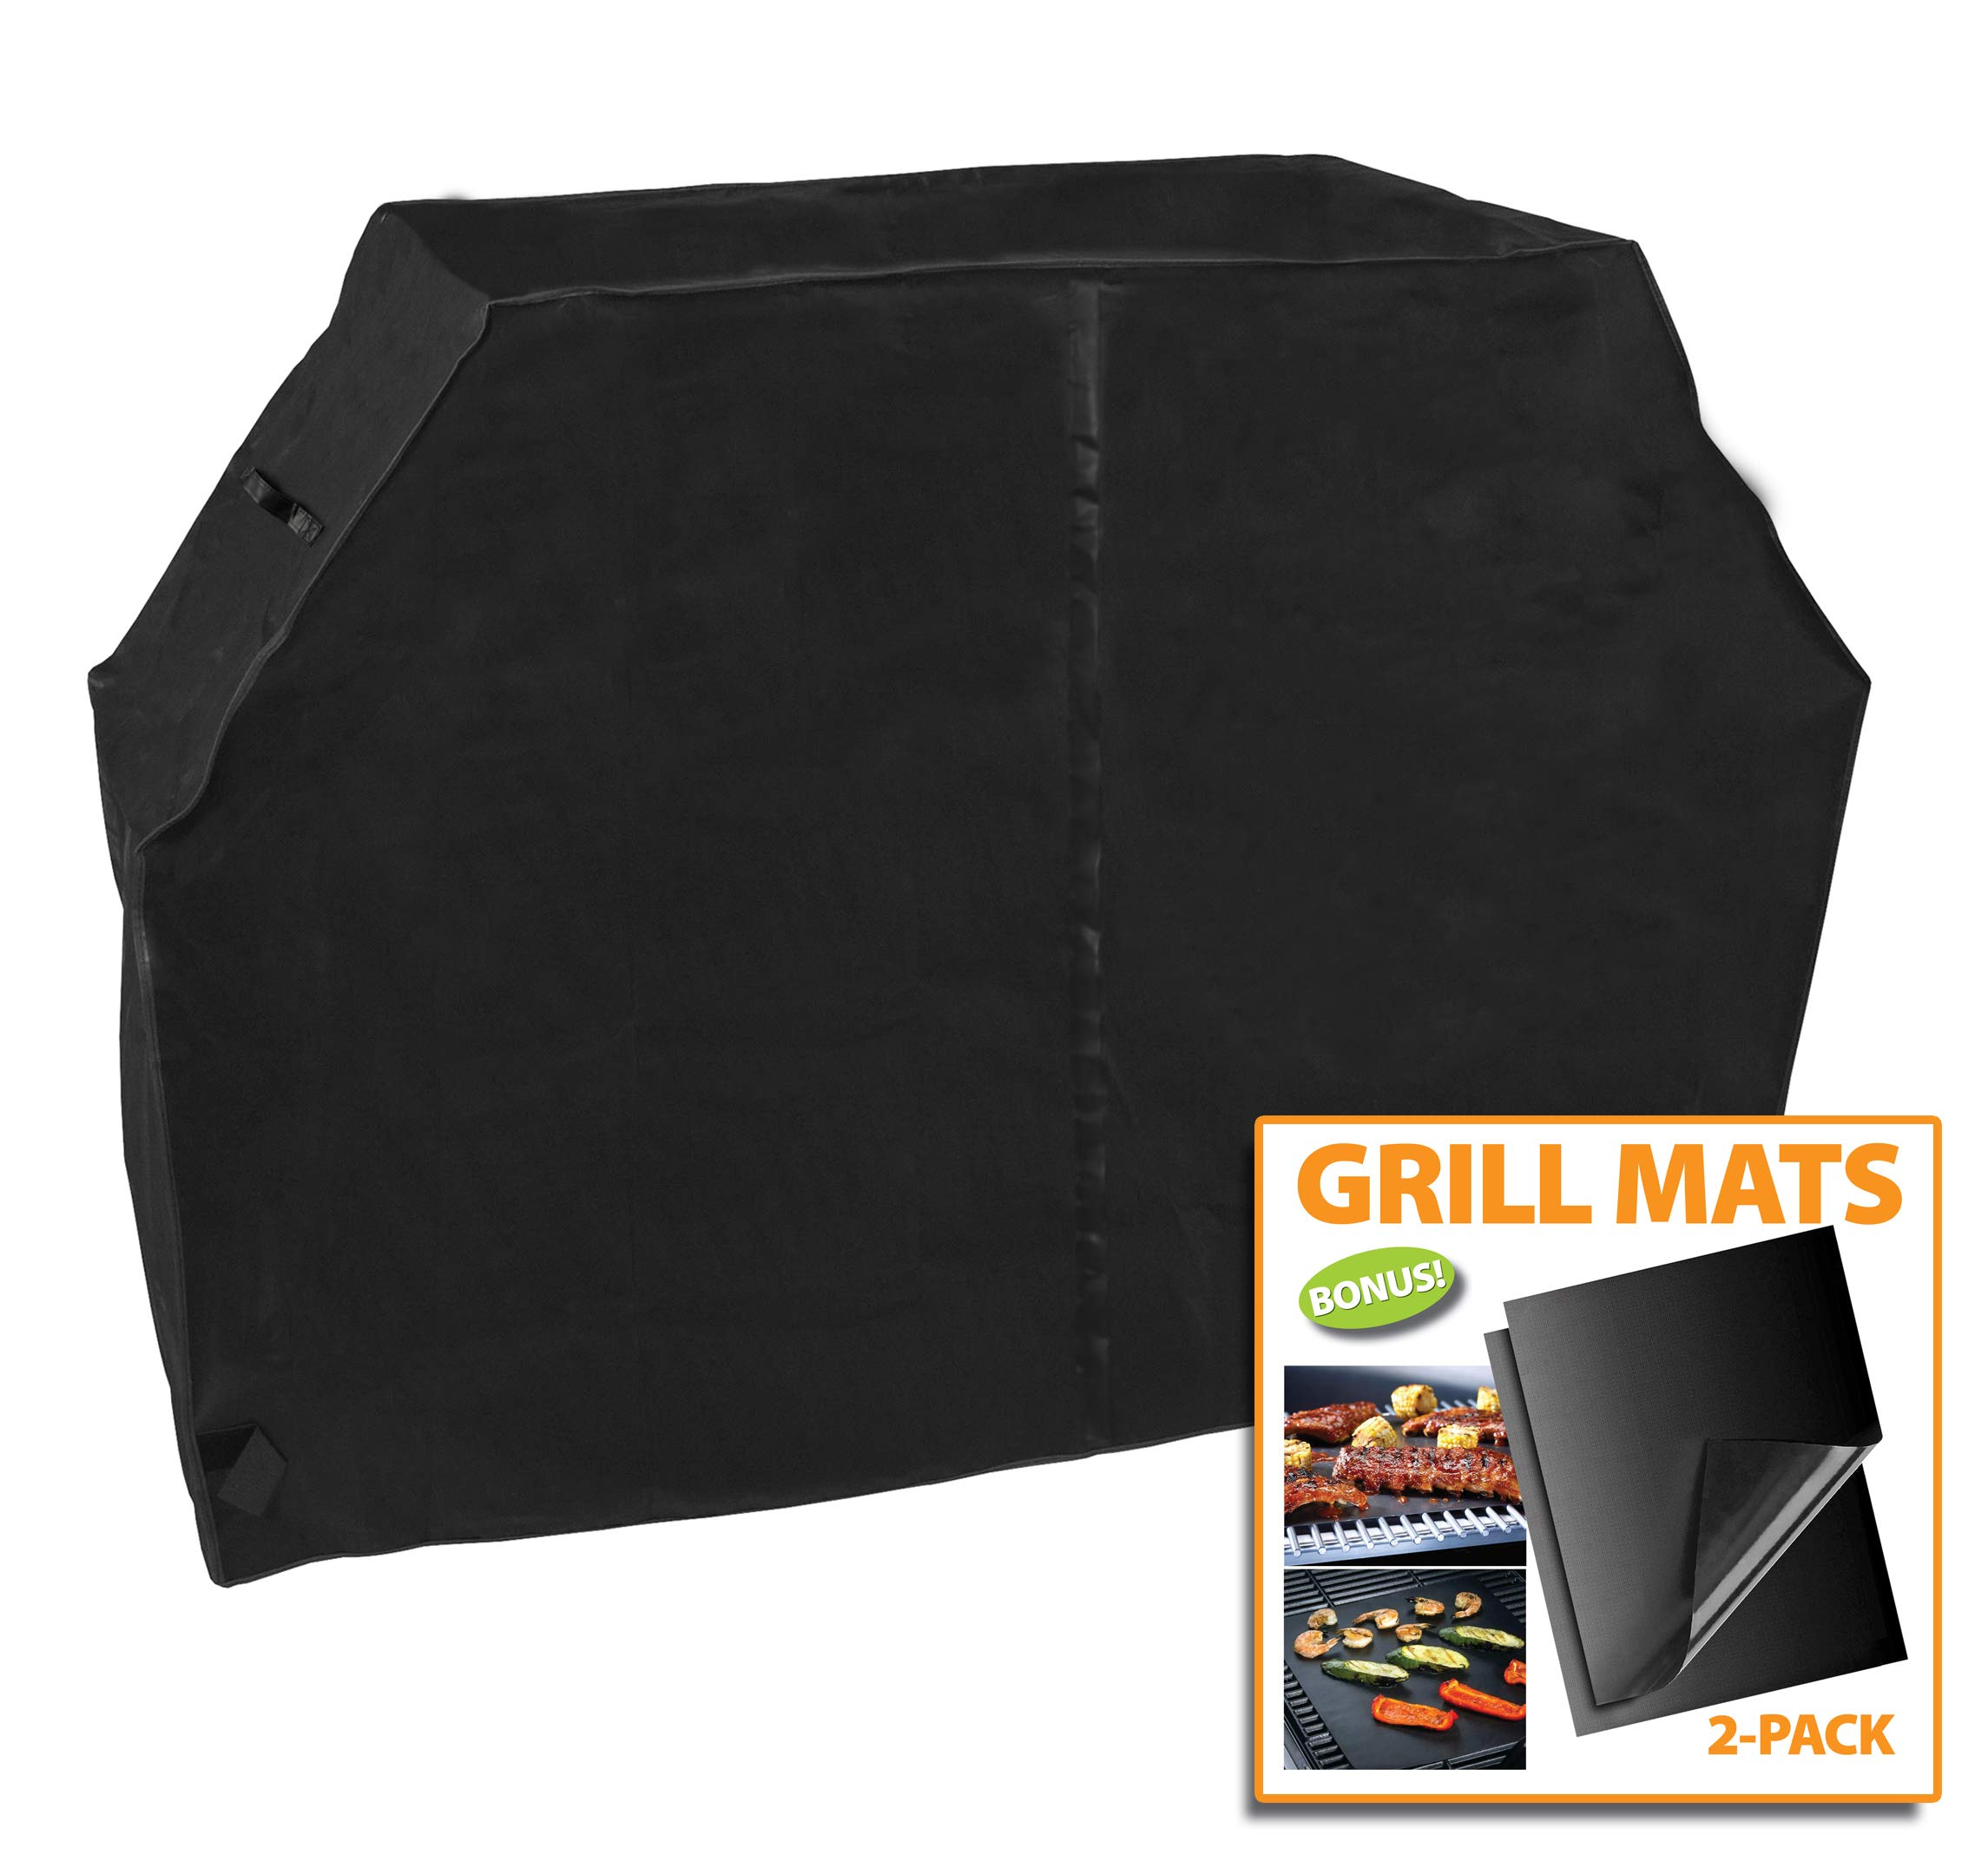 Outdoor Armor 79'' XL Grill Cover or Smoker Cover, Premium Heavy Duty PVC Coating for Waterproof, UV Protection, Bonus: 2 Grill Rack Mats Included by Outdoor Armor